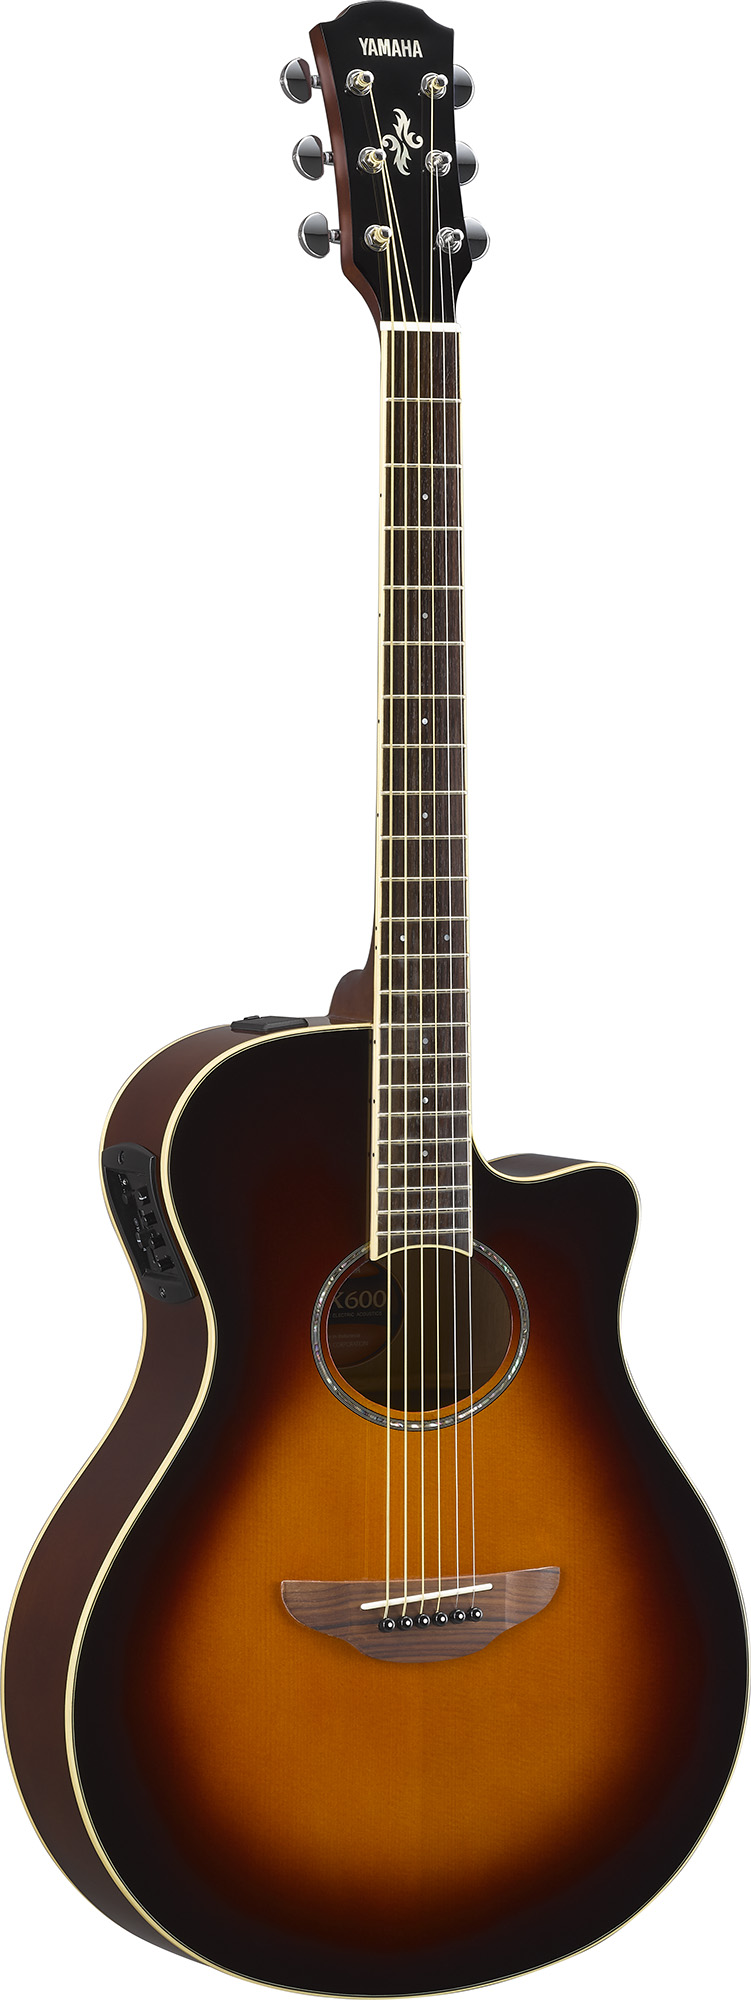 yamaha apx600 improves upon number one acoustic electric guitar in u s. Black Bedroom Furniture Sets. Home Design Ideas